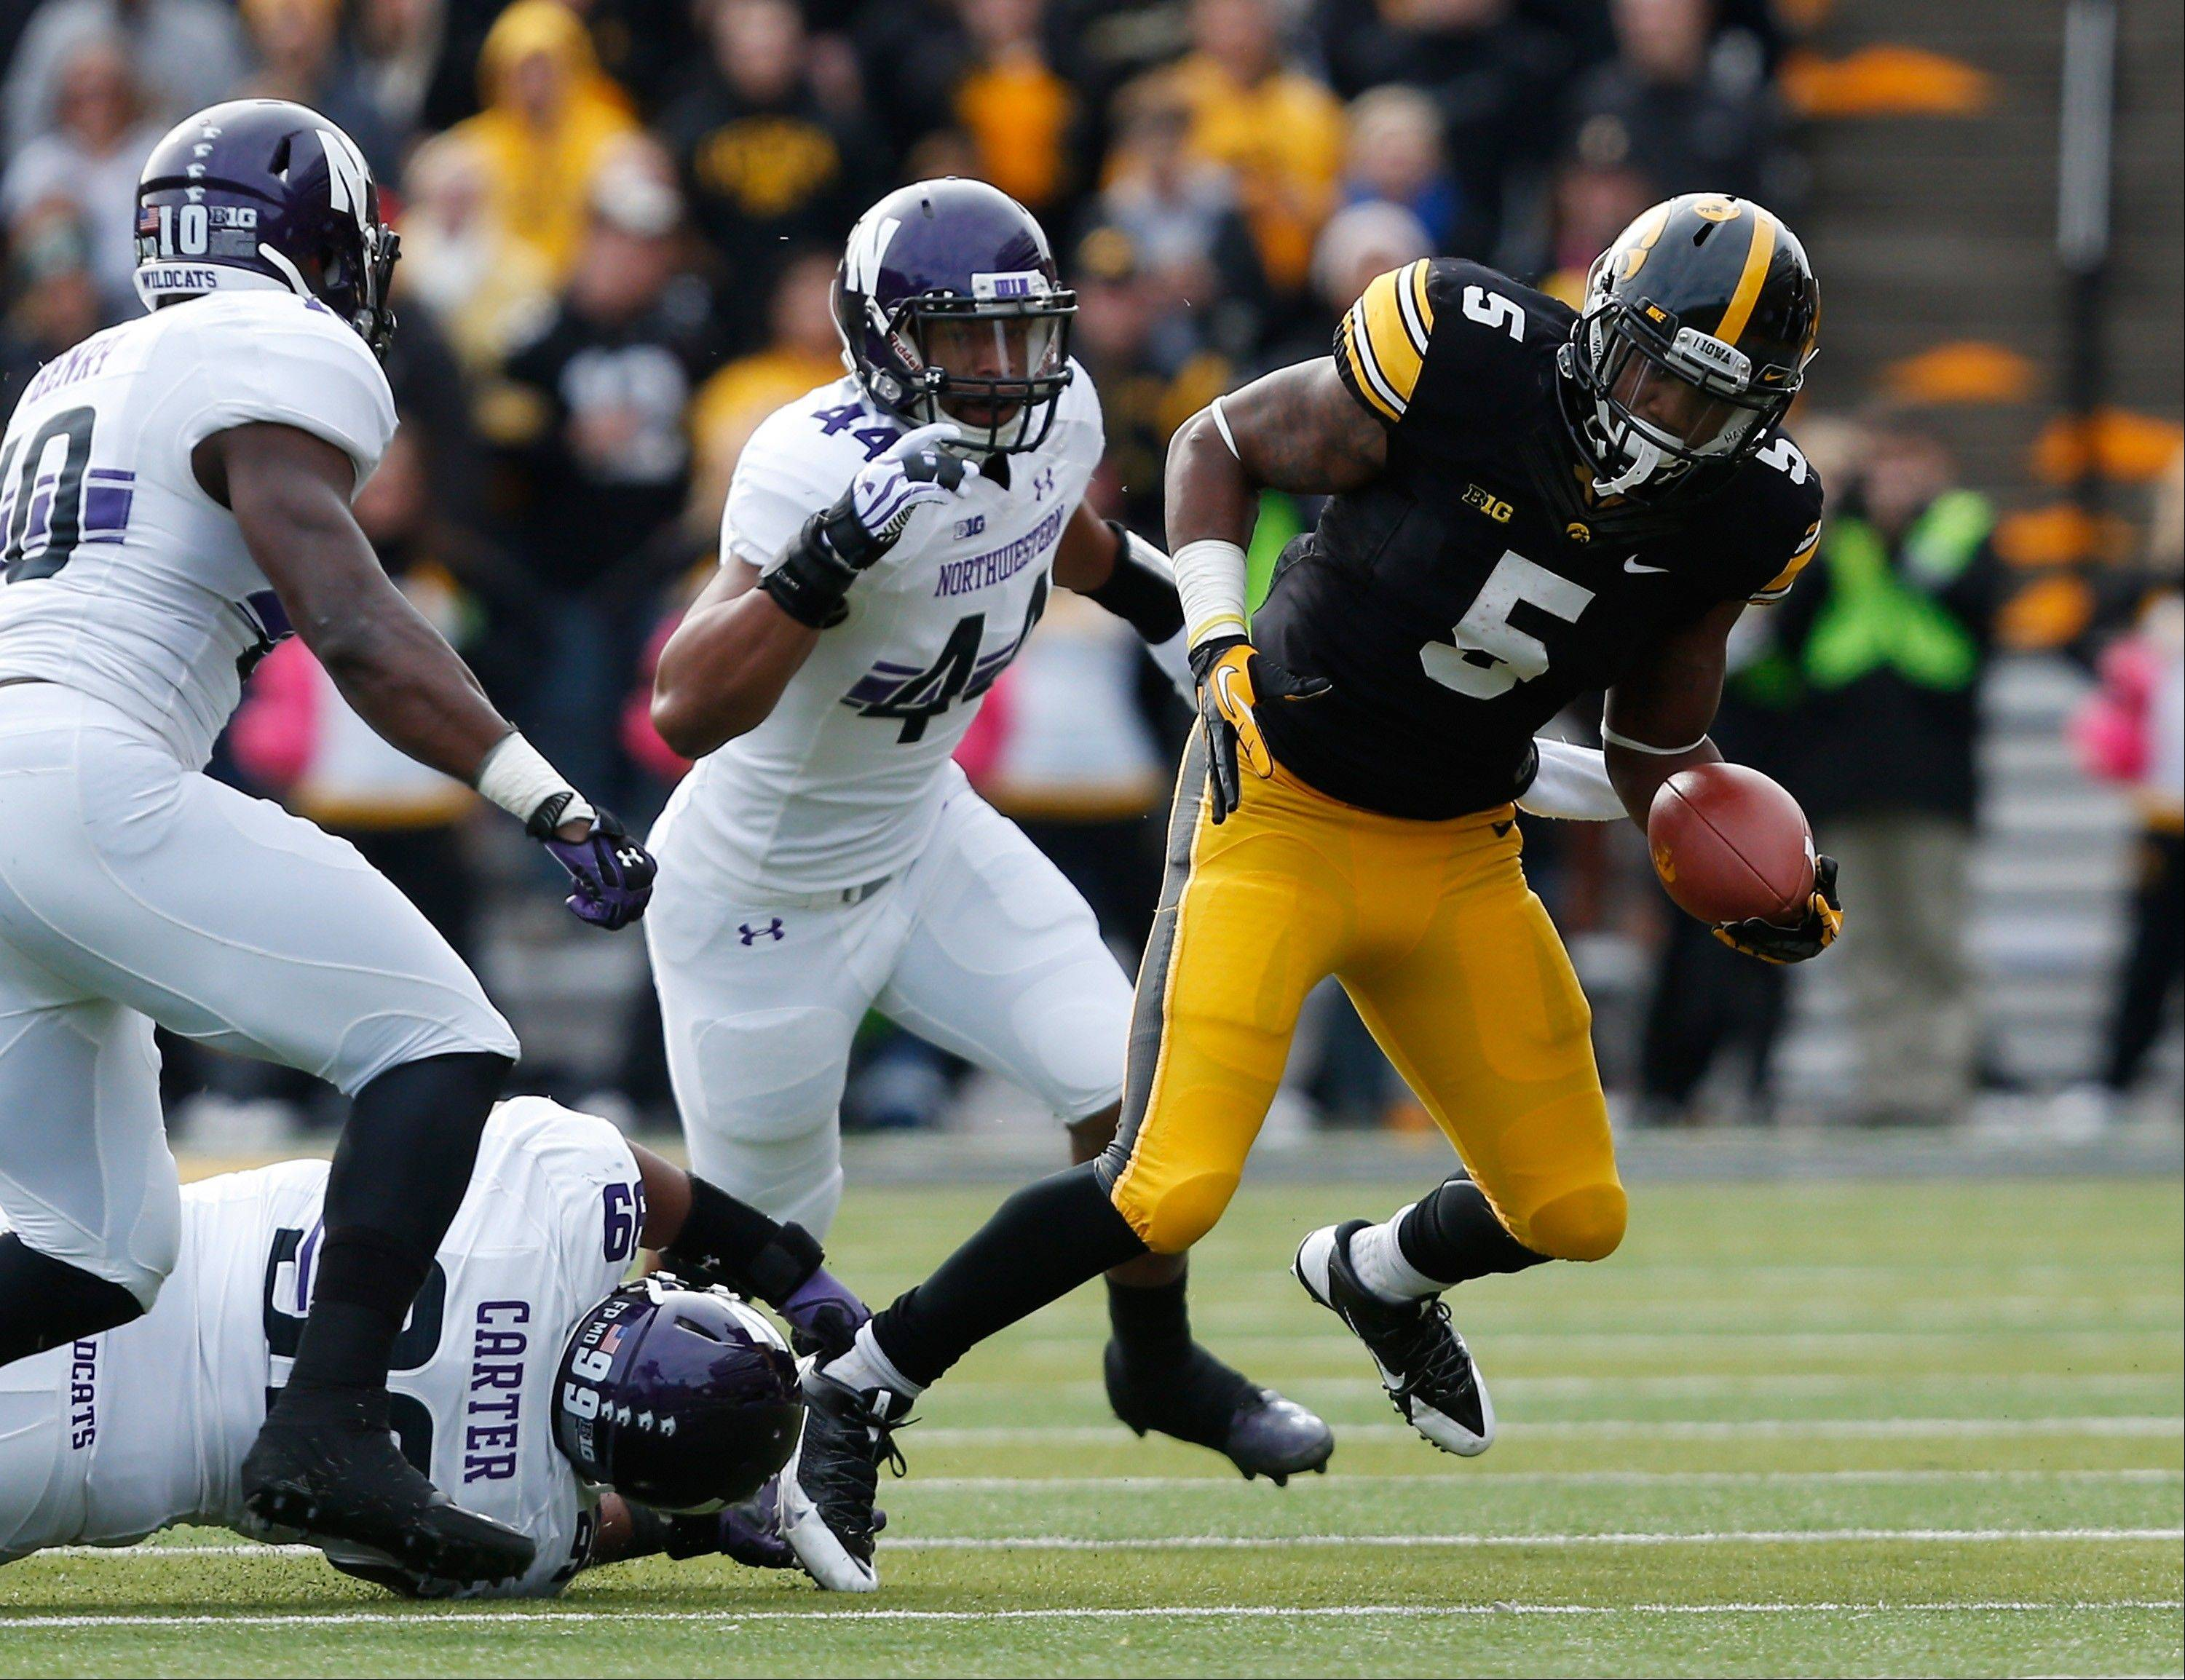 Iowa running back Damon Bullock escapes Northwestern Wildcats defensive lineman Chance Carter during the first half of last Saturday's game in Iowa City.